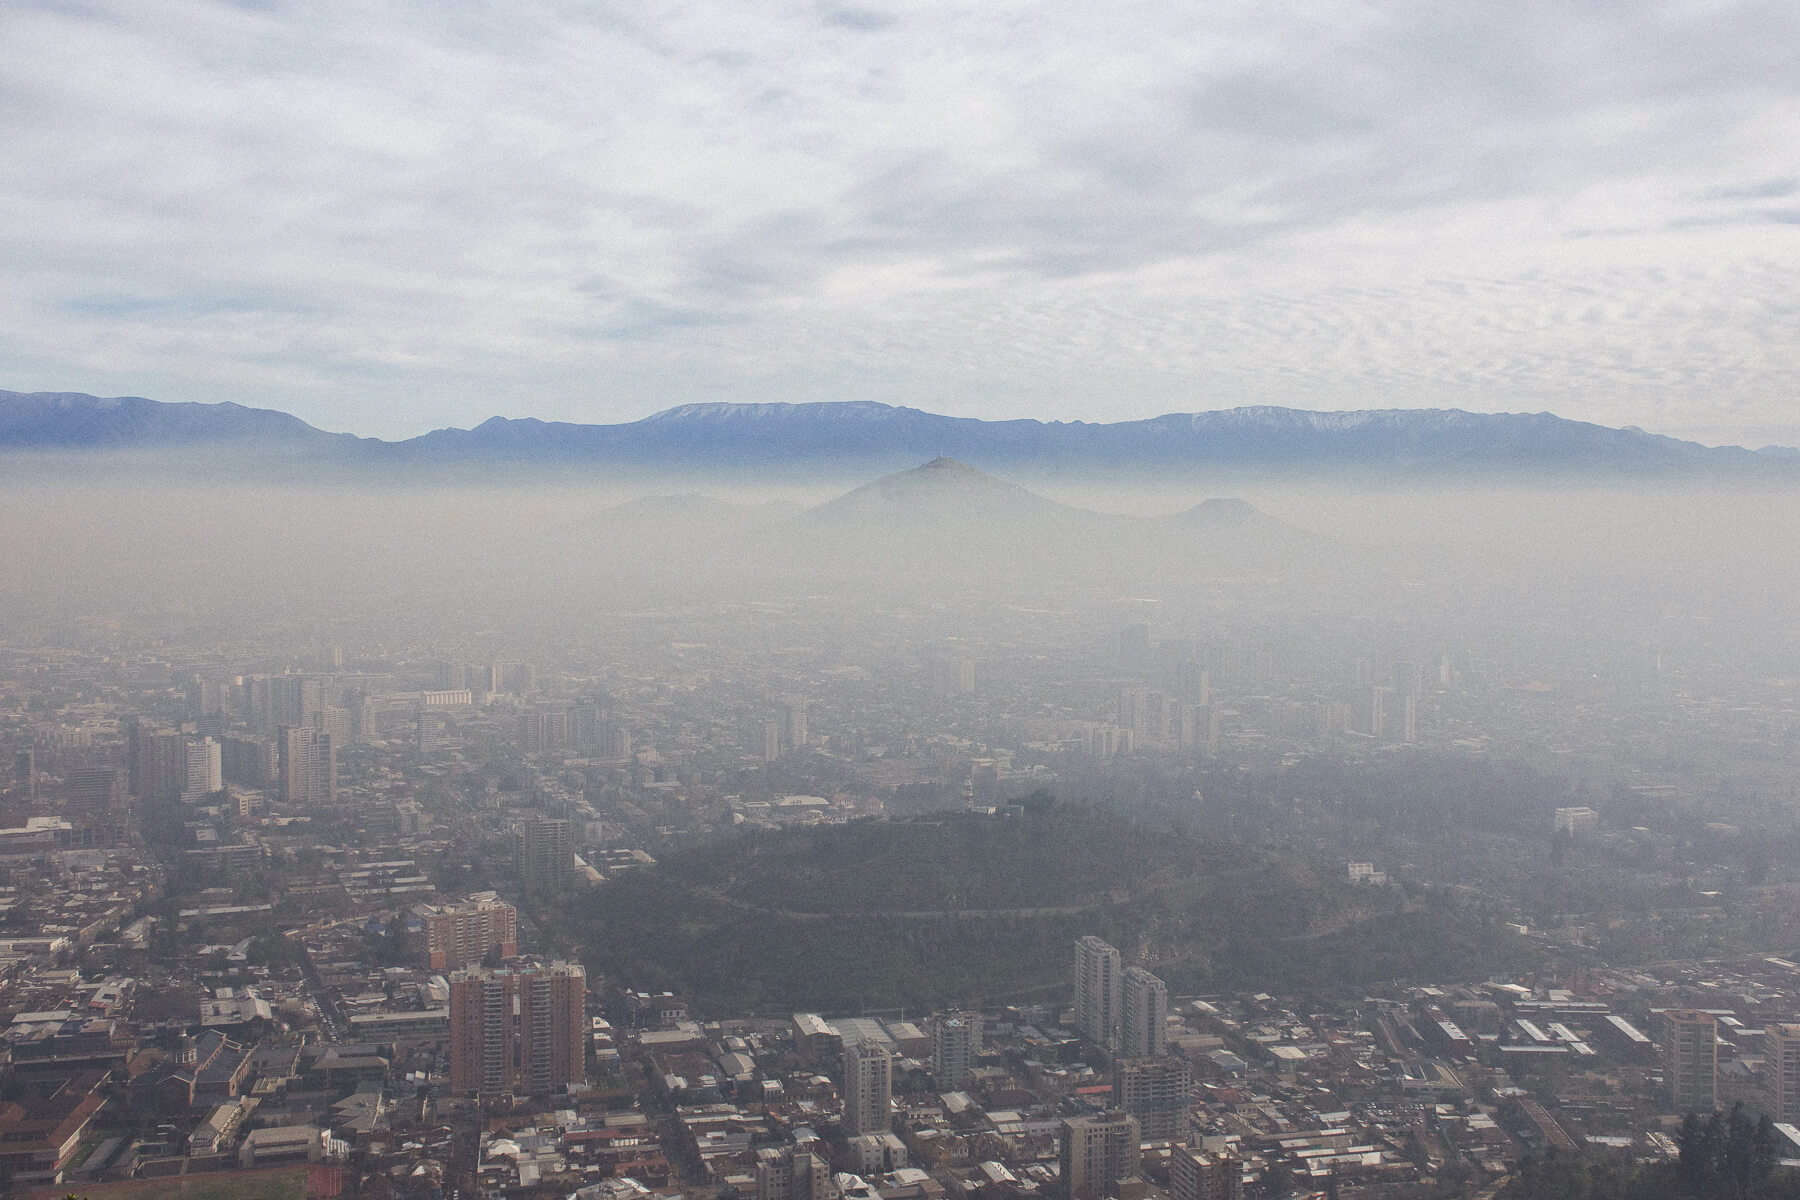 Smog and pollution covering Santiago city